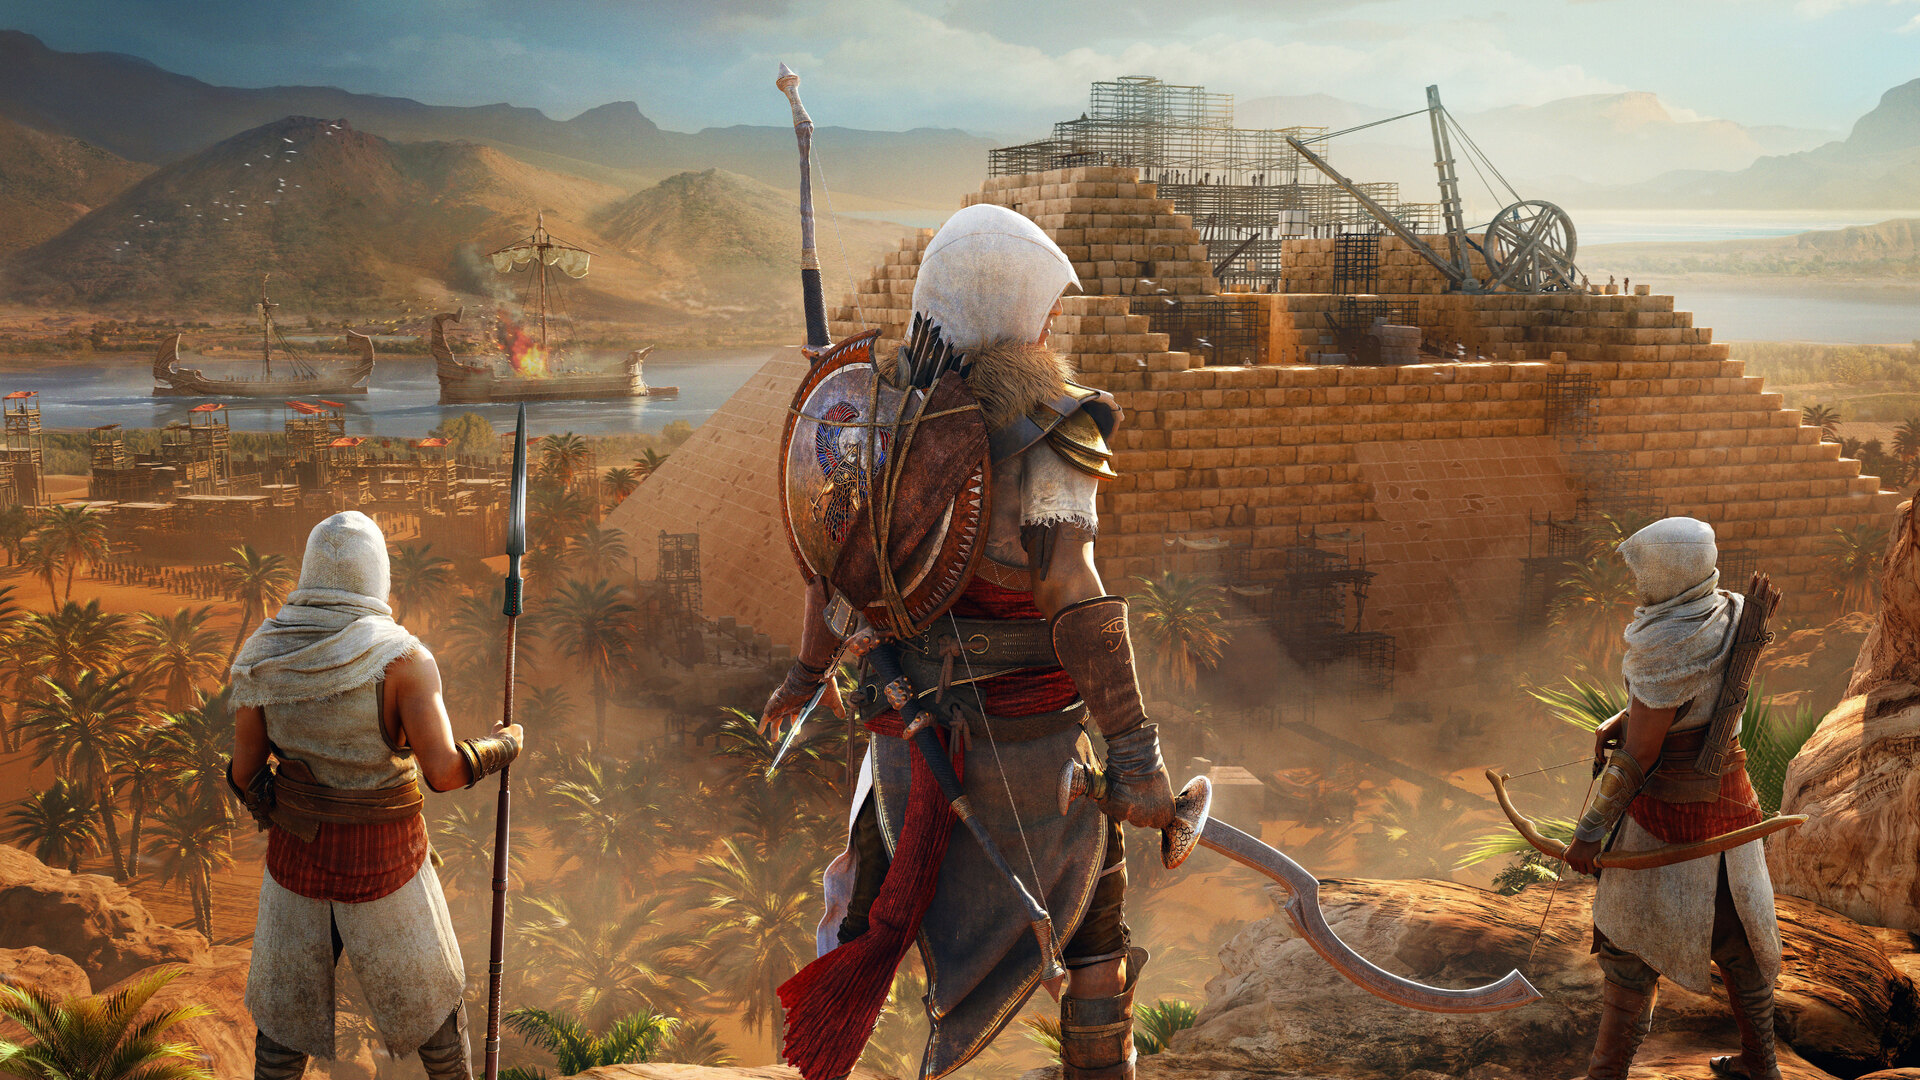 1920x1080 8k assassins creed origins laptop full hd 1080p hd 4k